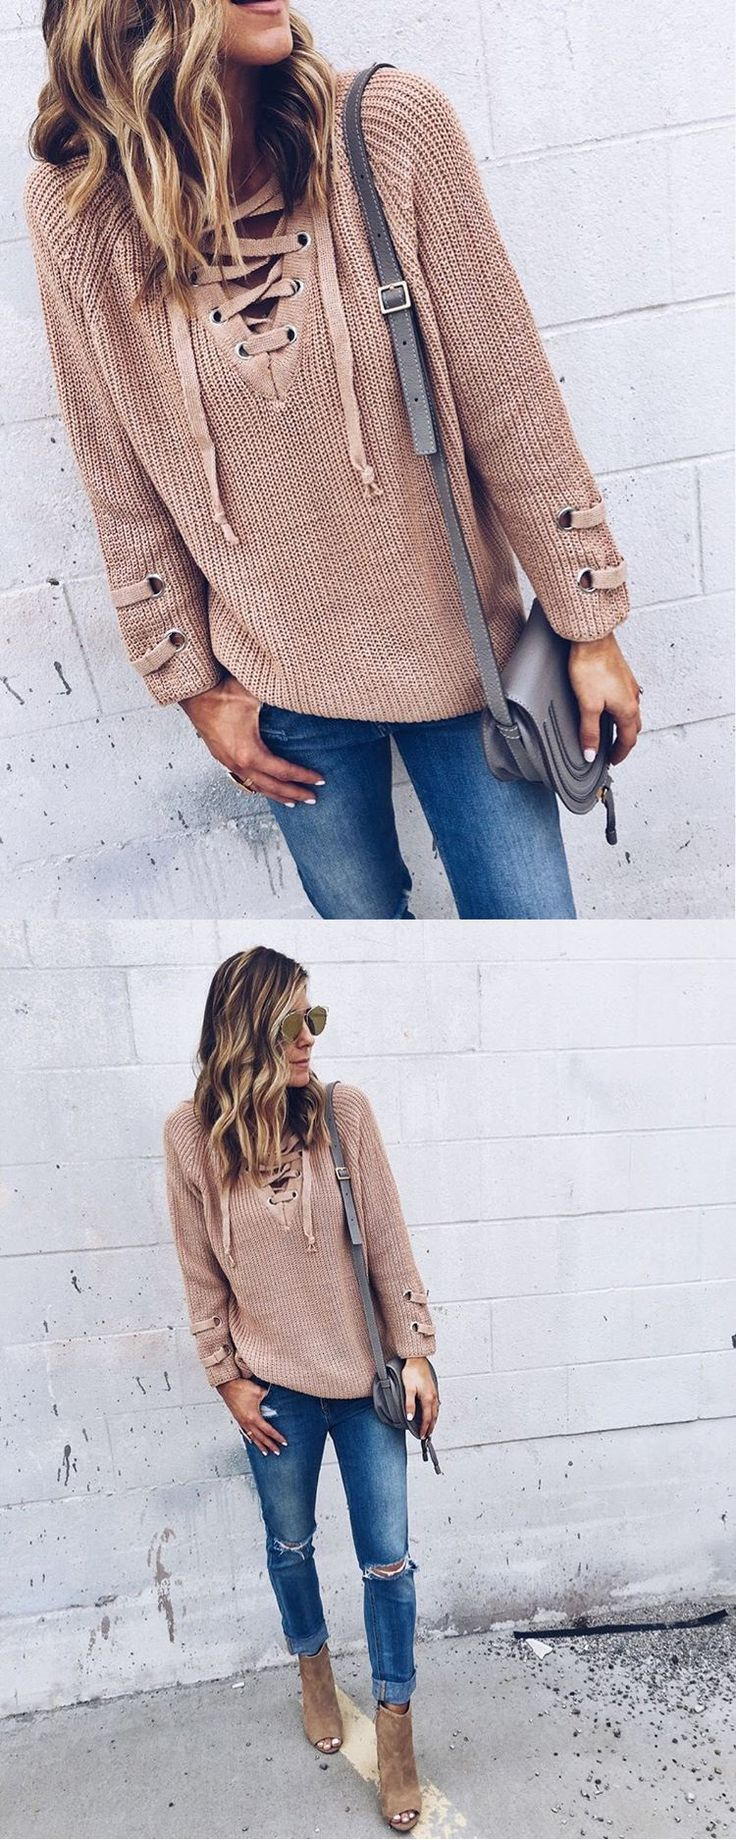 204 best ◦Sweater Outfits◦ images on Pinterest | Watch, Winter ...